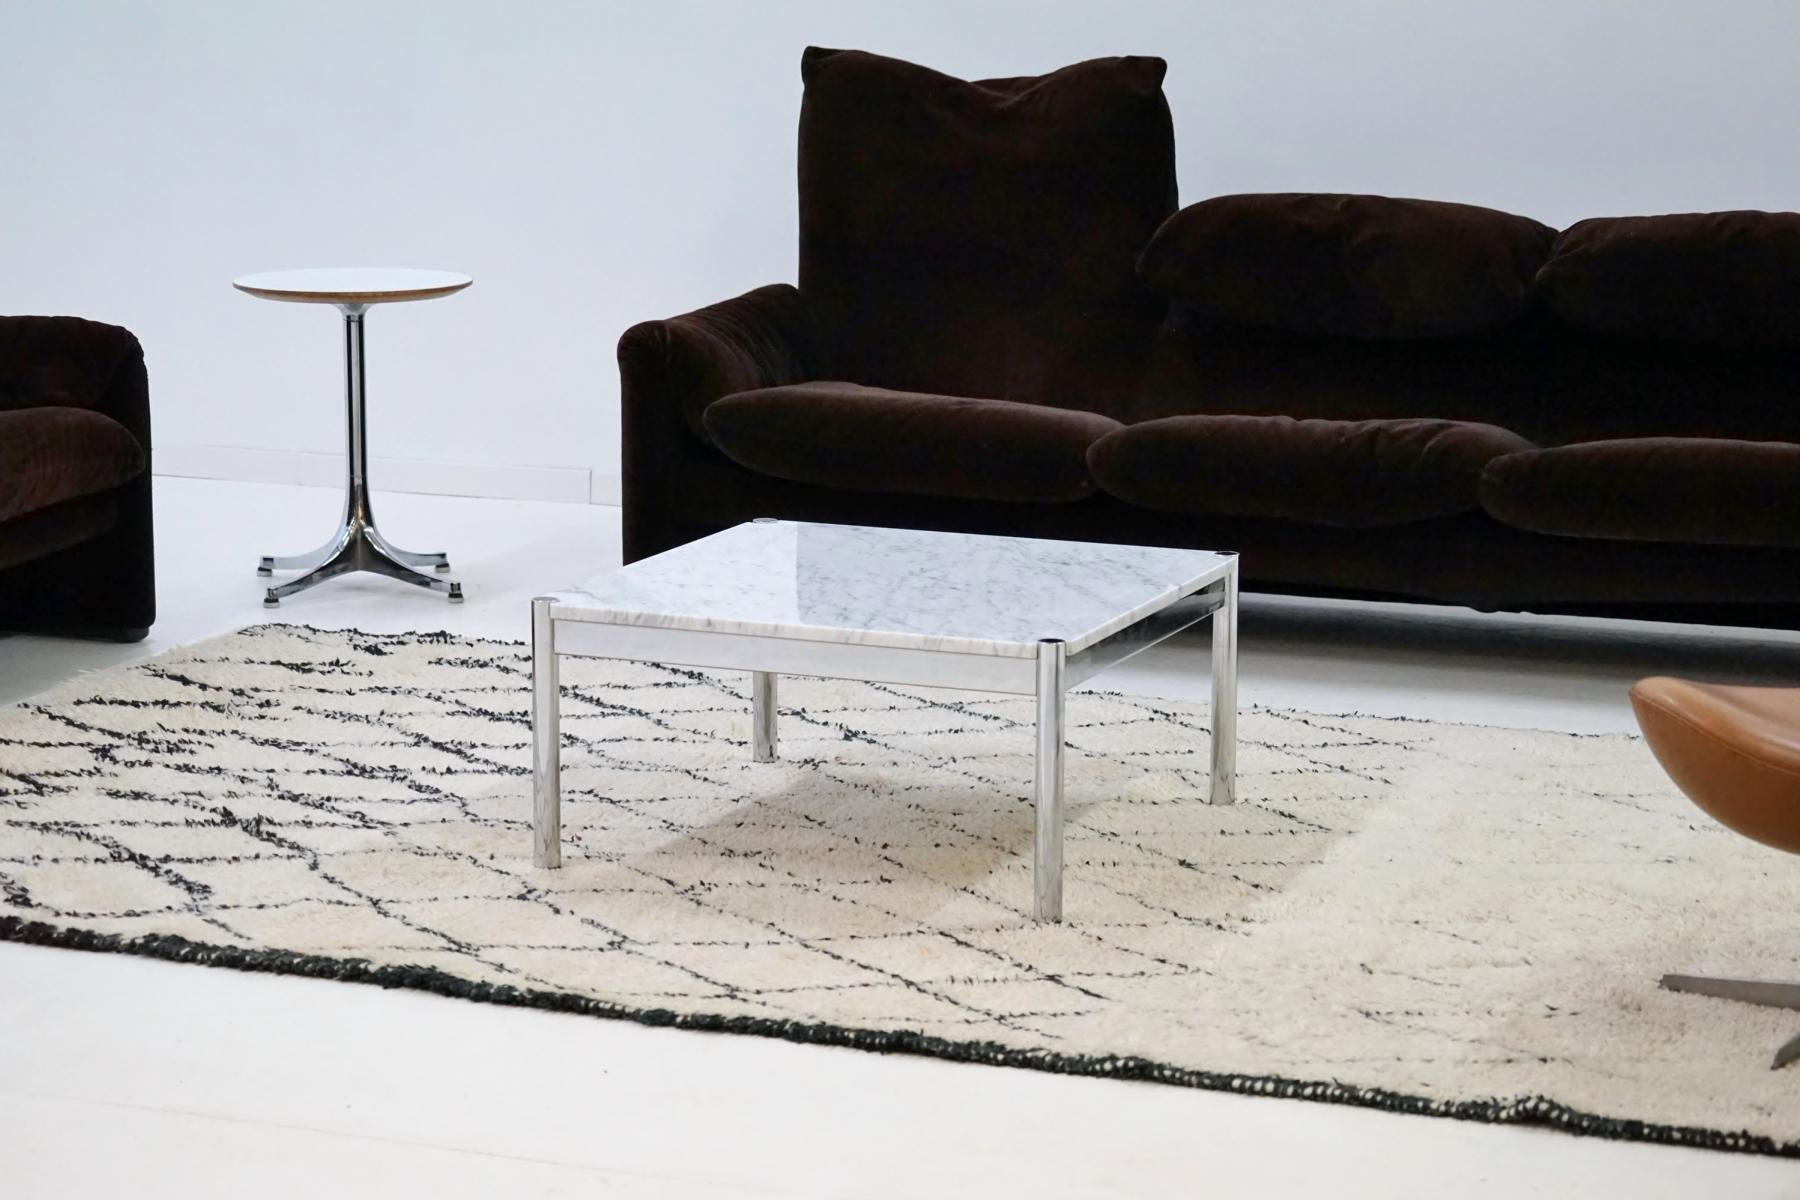 vintage couchtisch aus carrara marmor von usm haller bei pamono kaufen. Black Bedroom Furniture Sets. Home Design Ideas